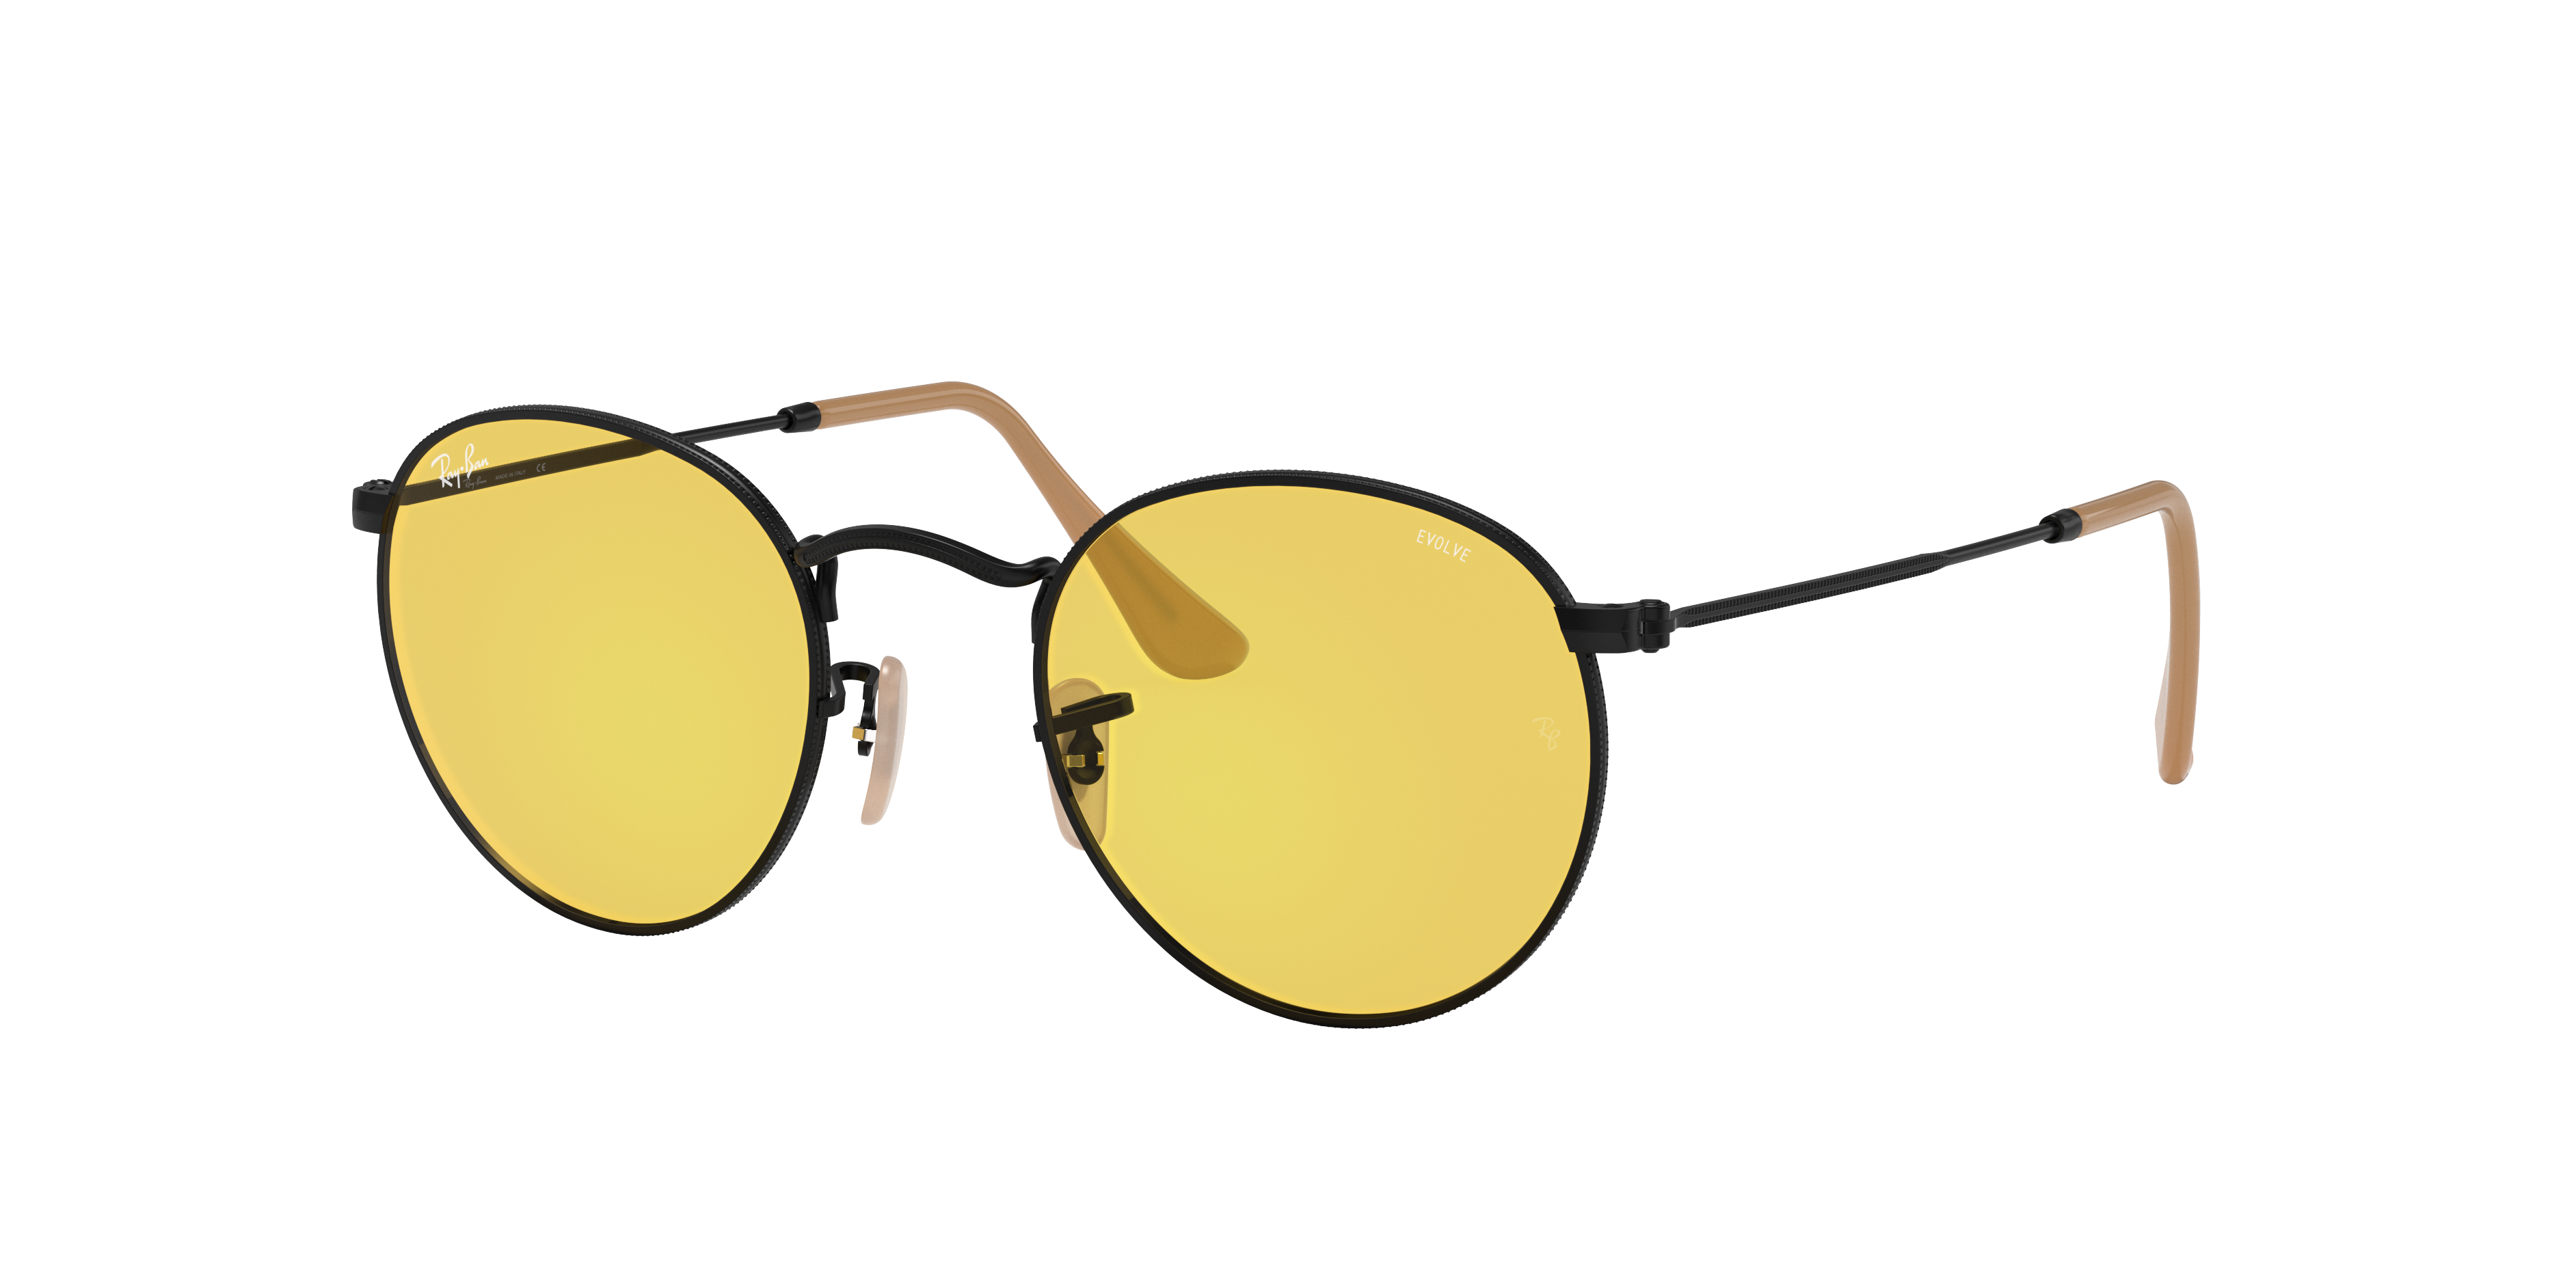 Ray-Ban Round Washed Evolve Black, Yellow Lenses - RB3447